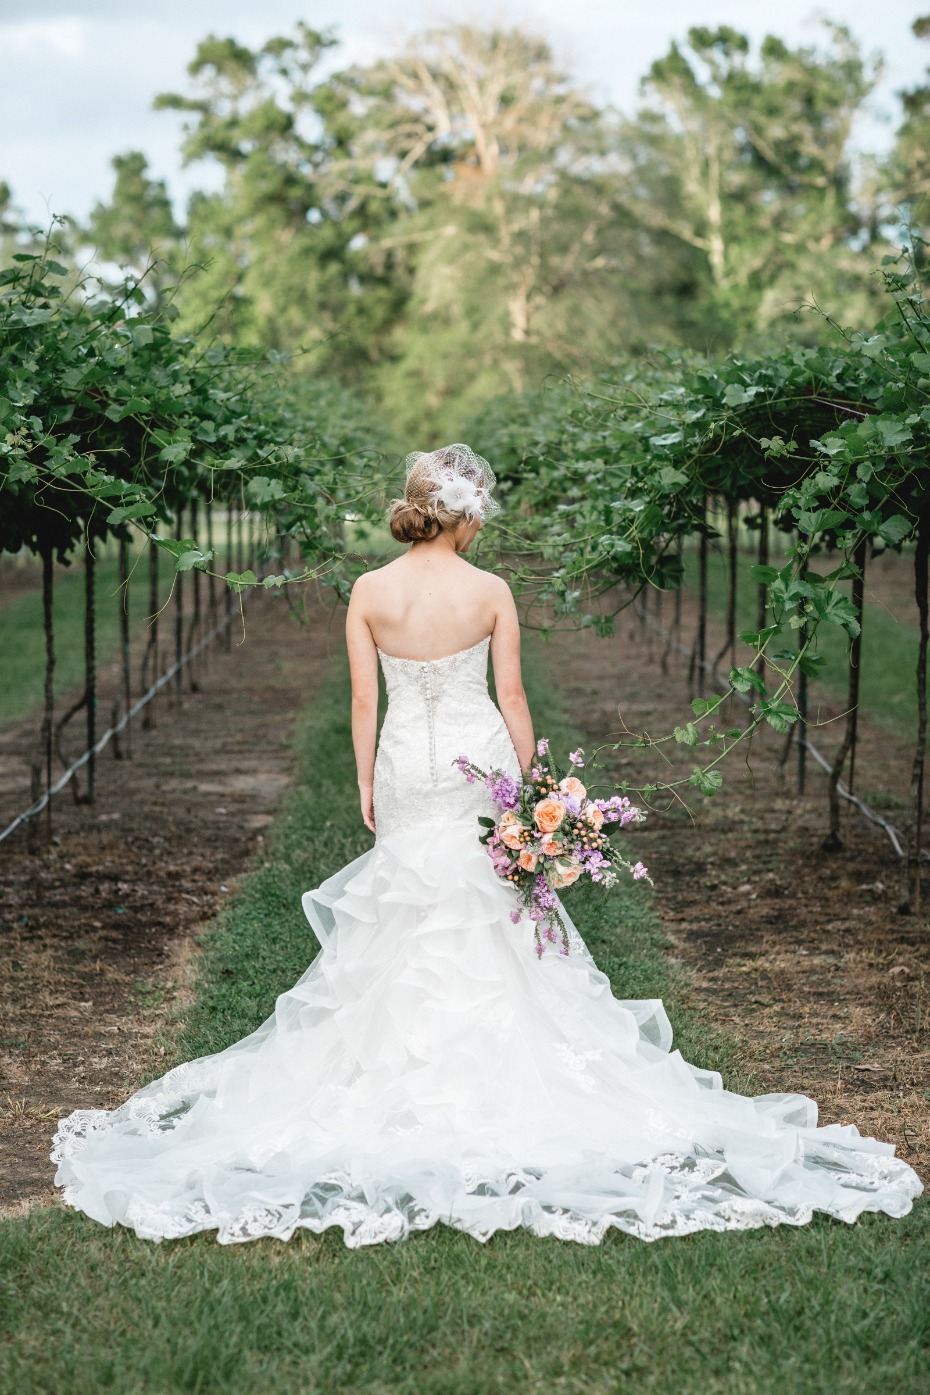 mermaid style dress train from Shades of White Bridal